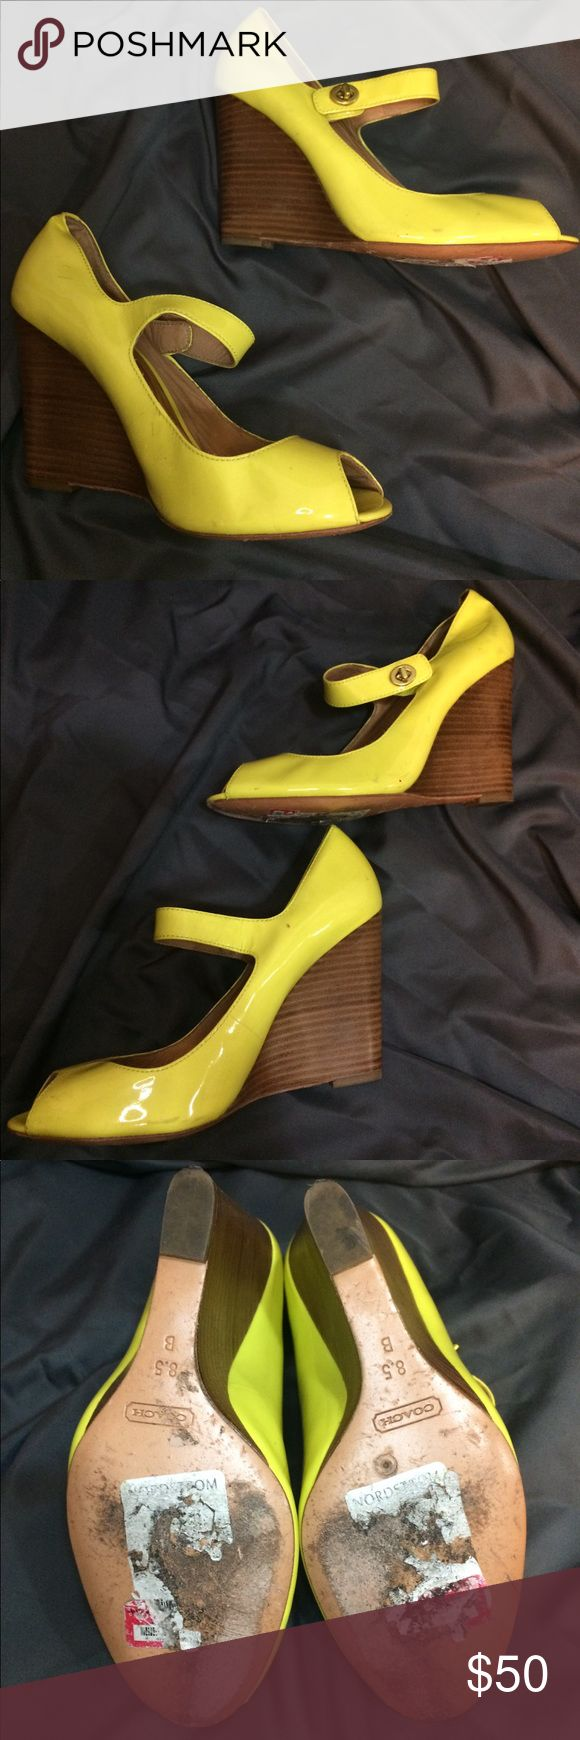 Coach Wedge Sz 8.5 Super cute yellow wedge with classic coach twist lock on ankle strap. Material: Patent Leather. Has damage on the sole and a wrinkle on the left ankle but otherwise in good condition. Reasonable offers considered. Coach Shoes Wedges